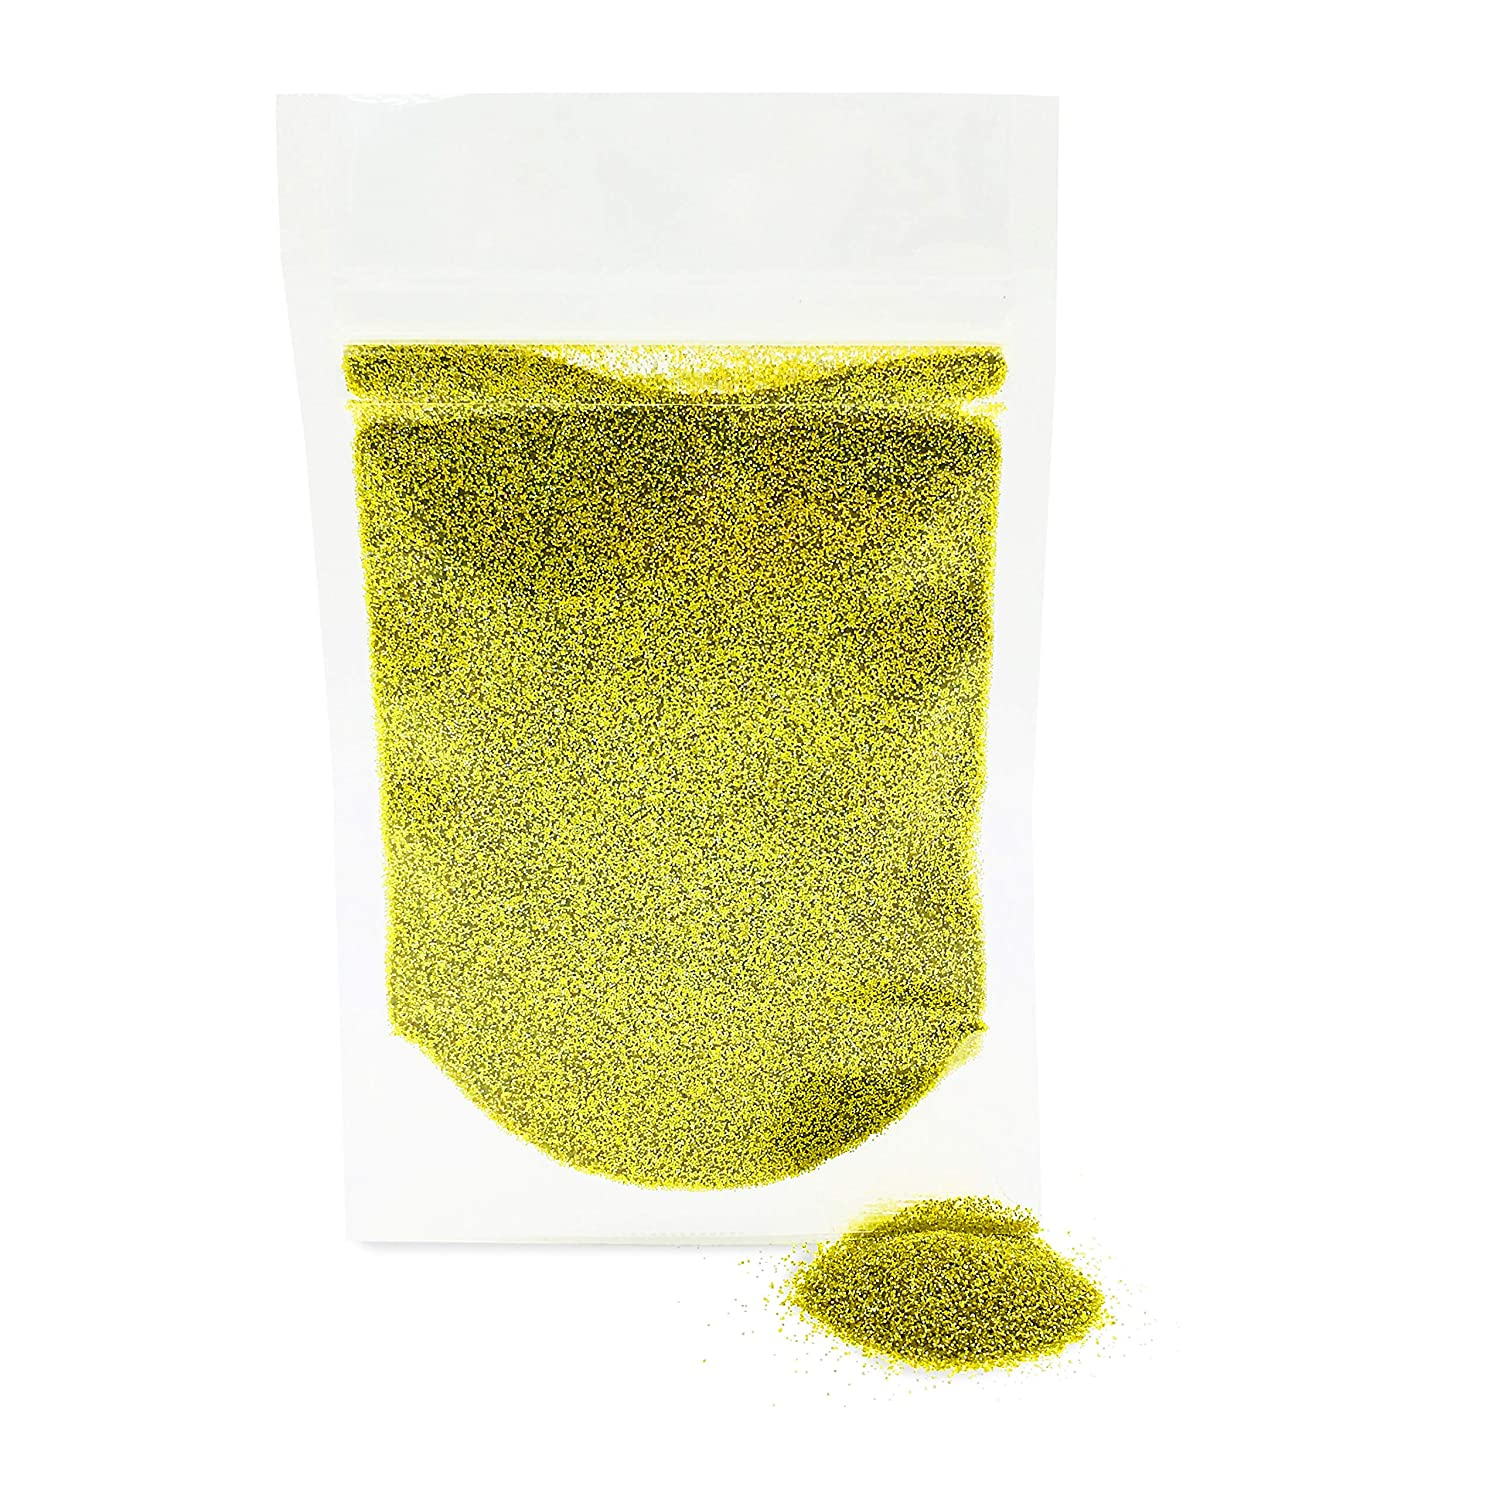 Biodegradable Body Glitter (1/2 Ounce, Moonlit Silver) Alternative Imagination